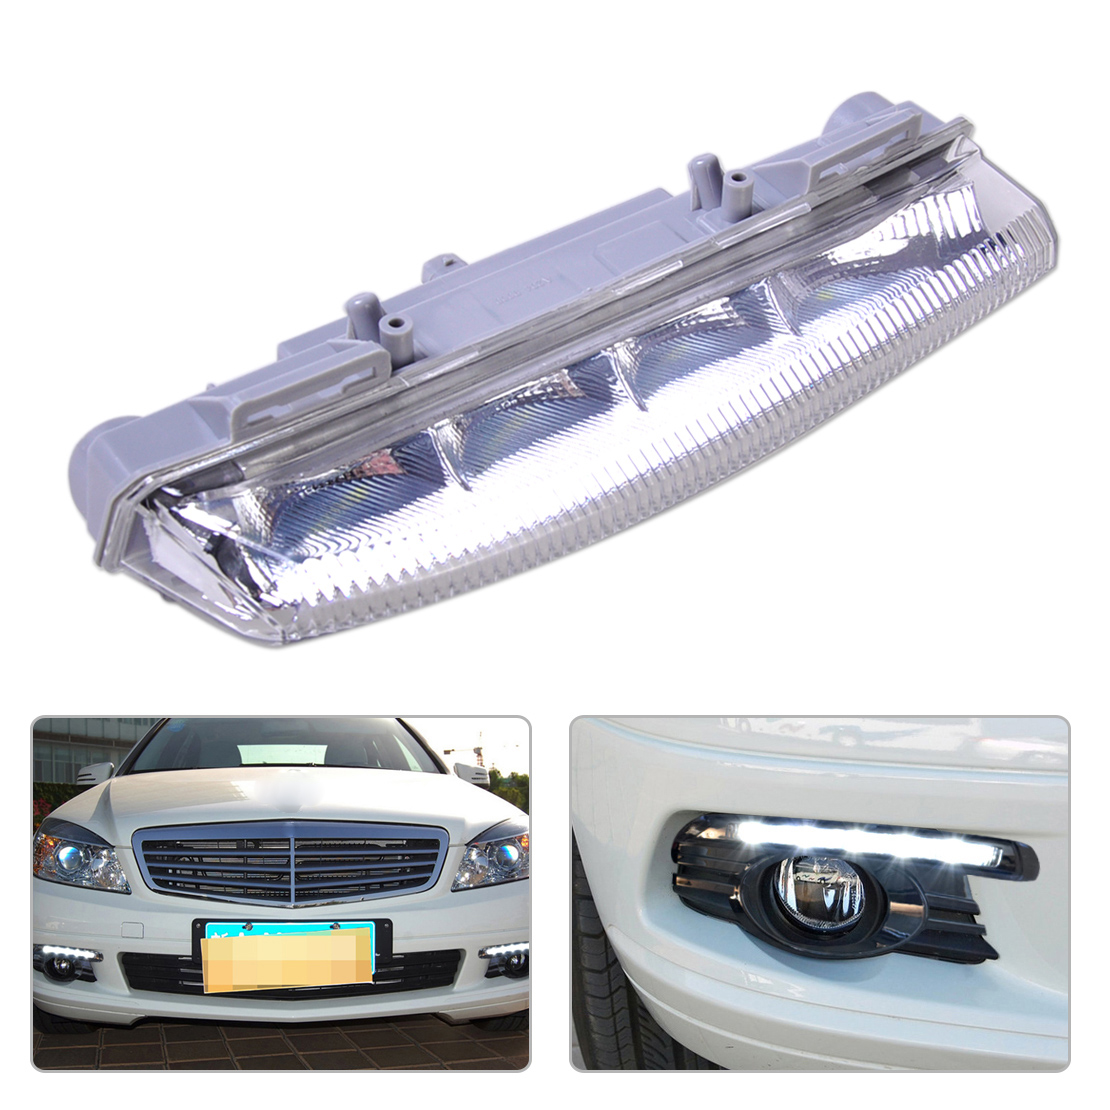 beler High Preformance 1Pc DRL Fog Light Lamp Right 2049069000 204 906 90 00 Fit for Mercedes Benz W204 W212 S204 R172 1 pcs right side 2048202256 front fog lamp with bulb bumper light for mercedes benz c class w204 2006 2011